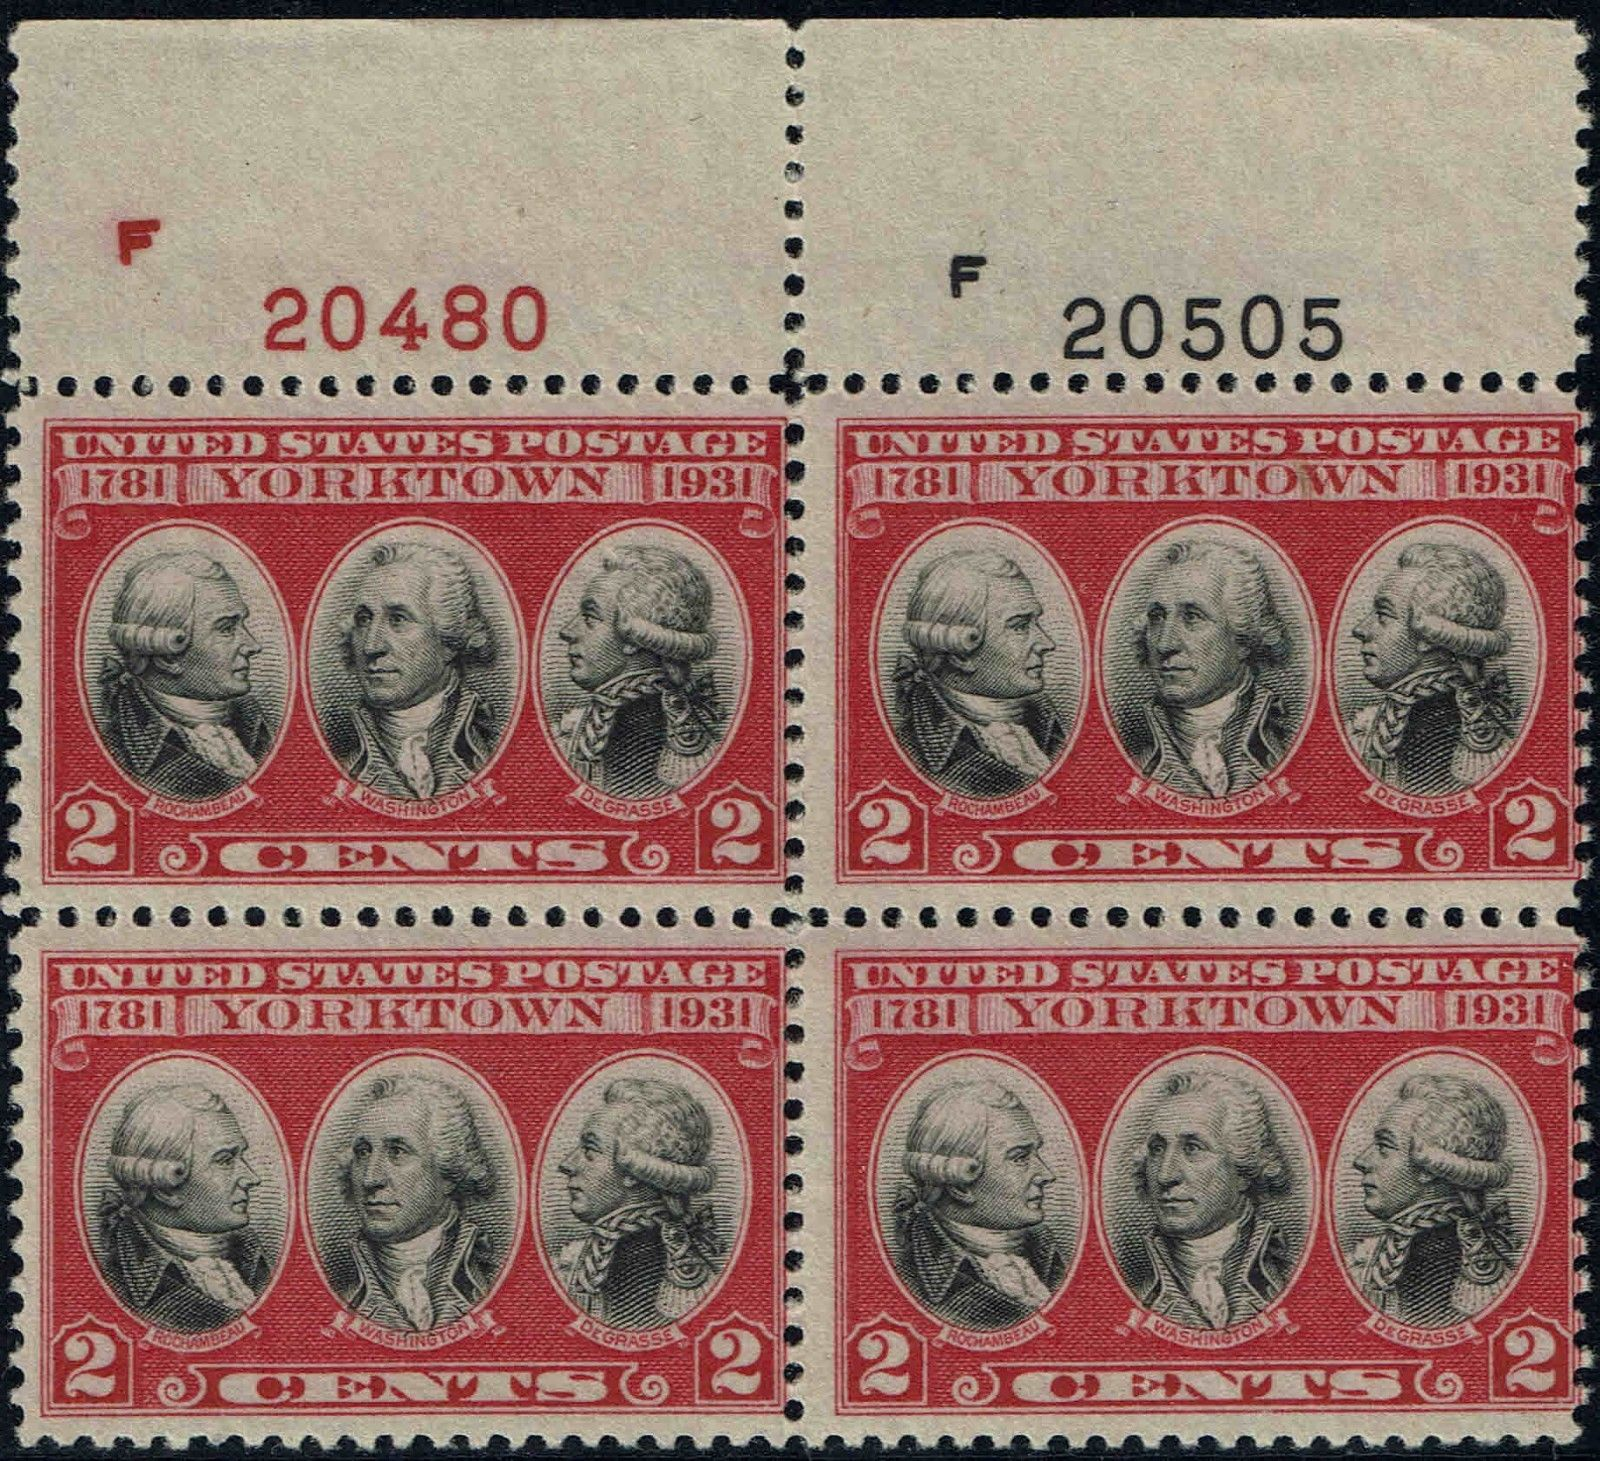 United States - Scott #703 (1931) block of four with carmine and black plate numbers from top of sheet